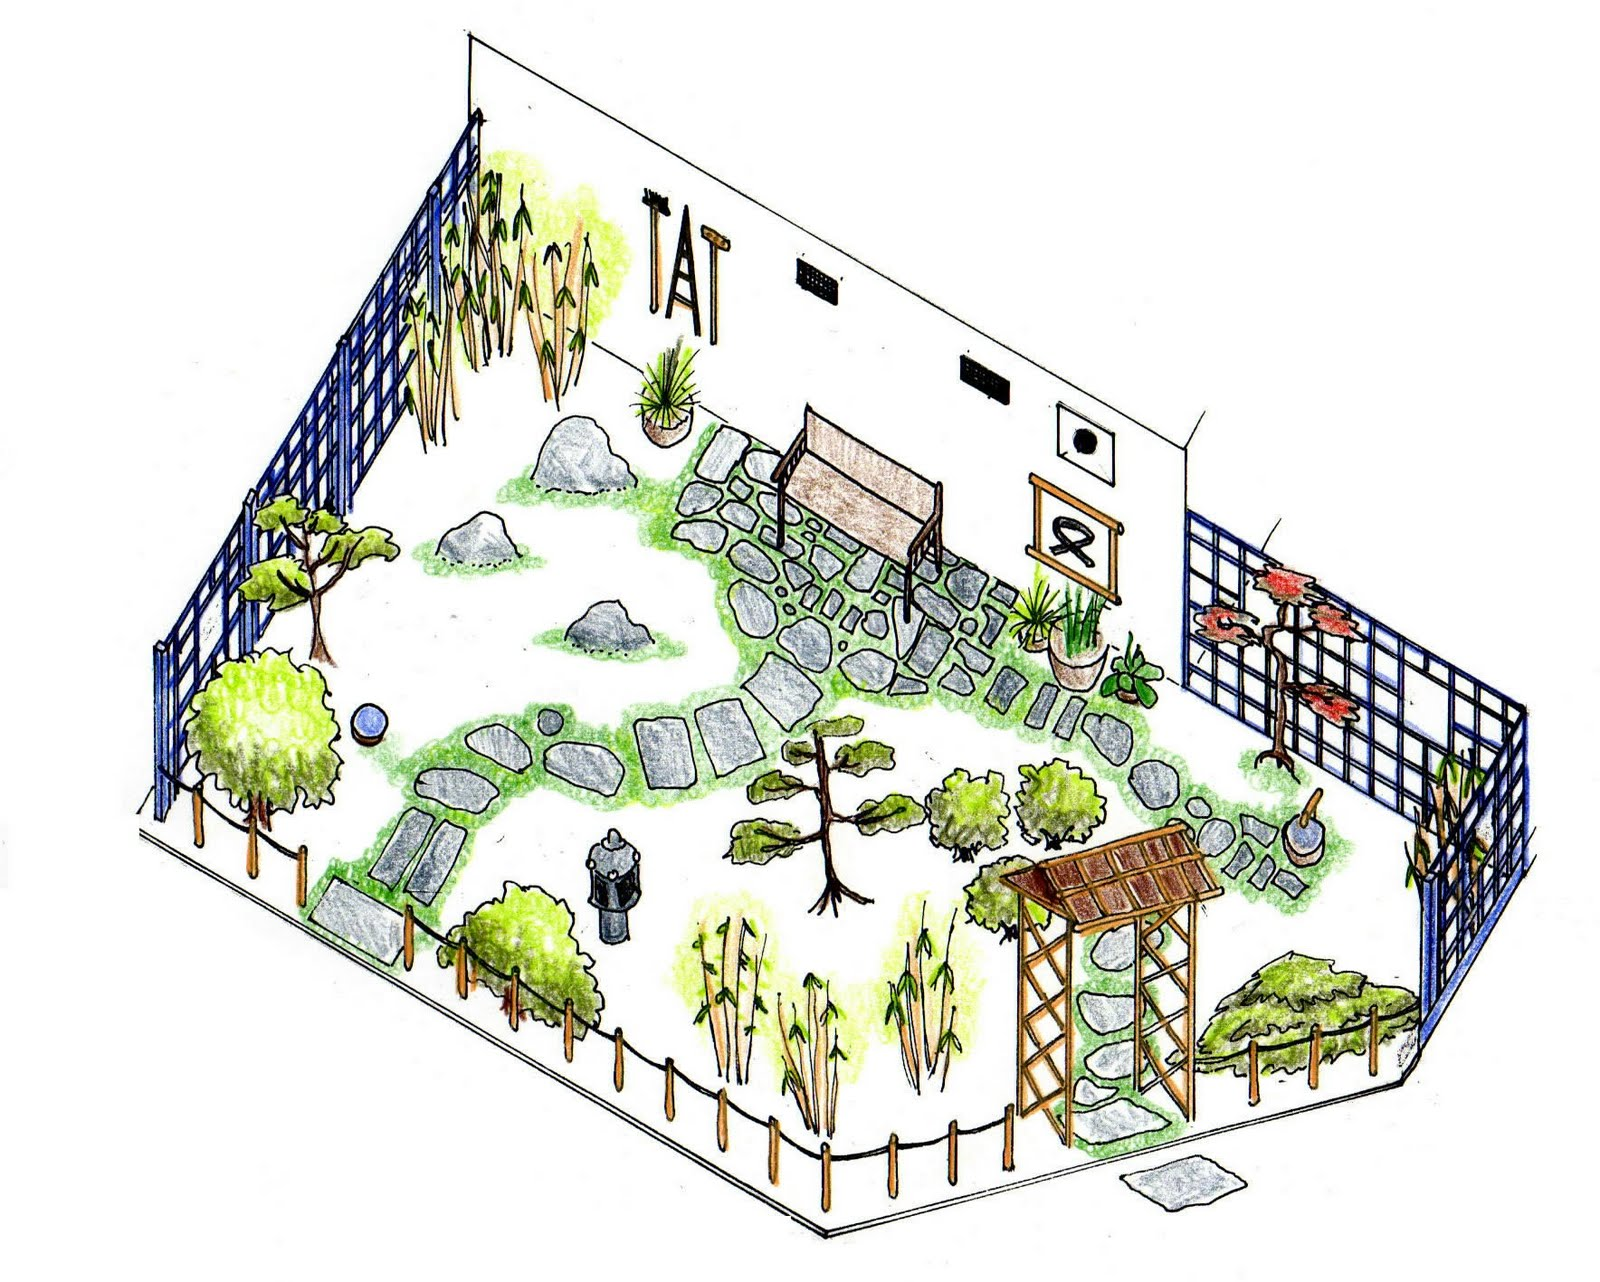 Exceptional Plan For Memorial Garden 2009